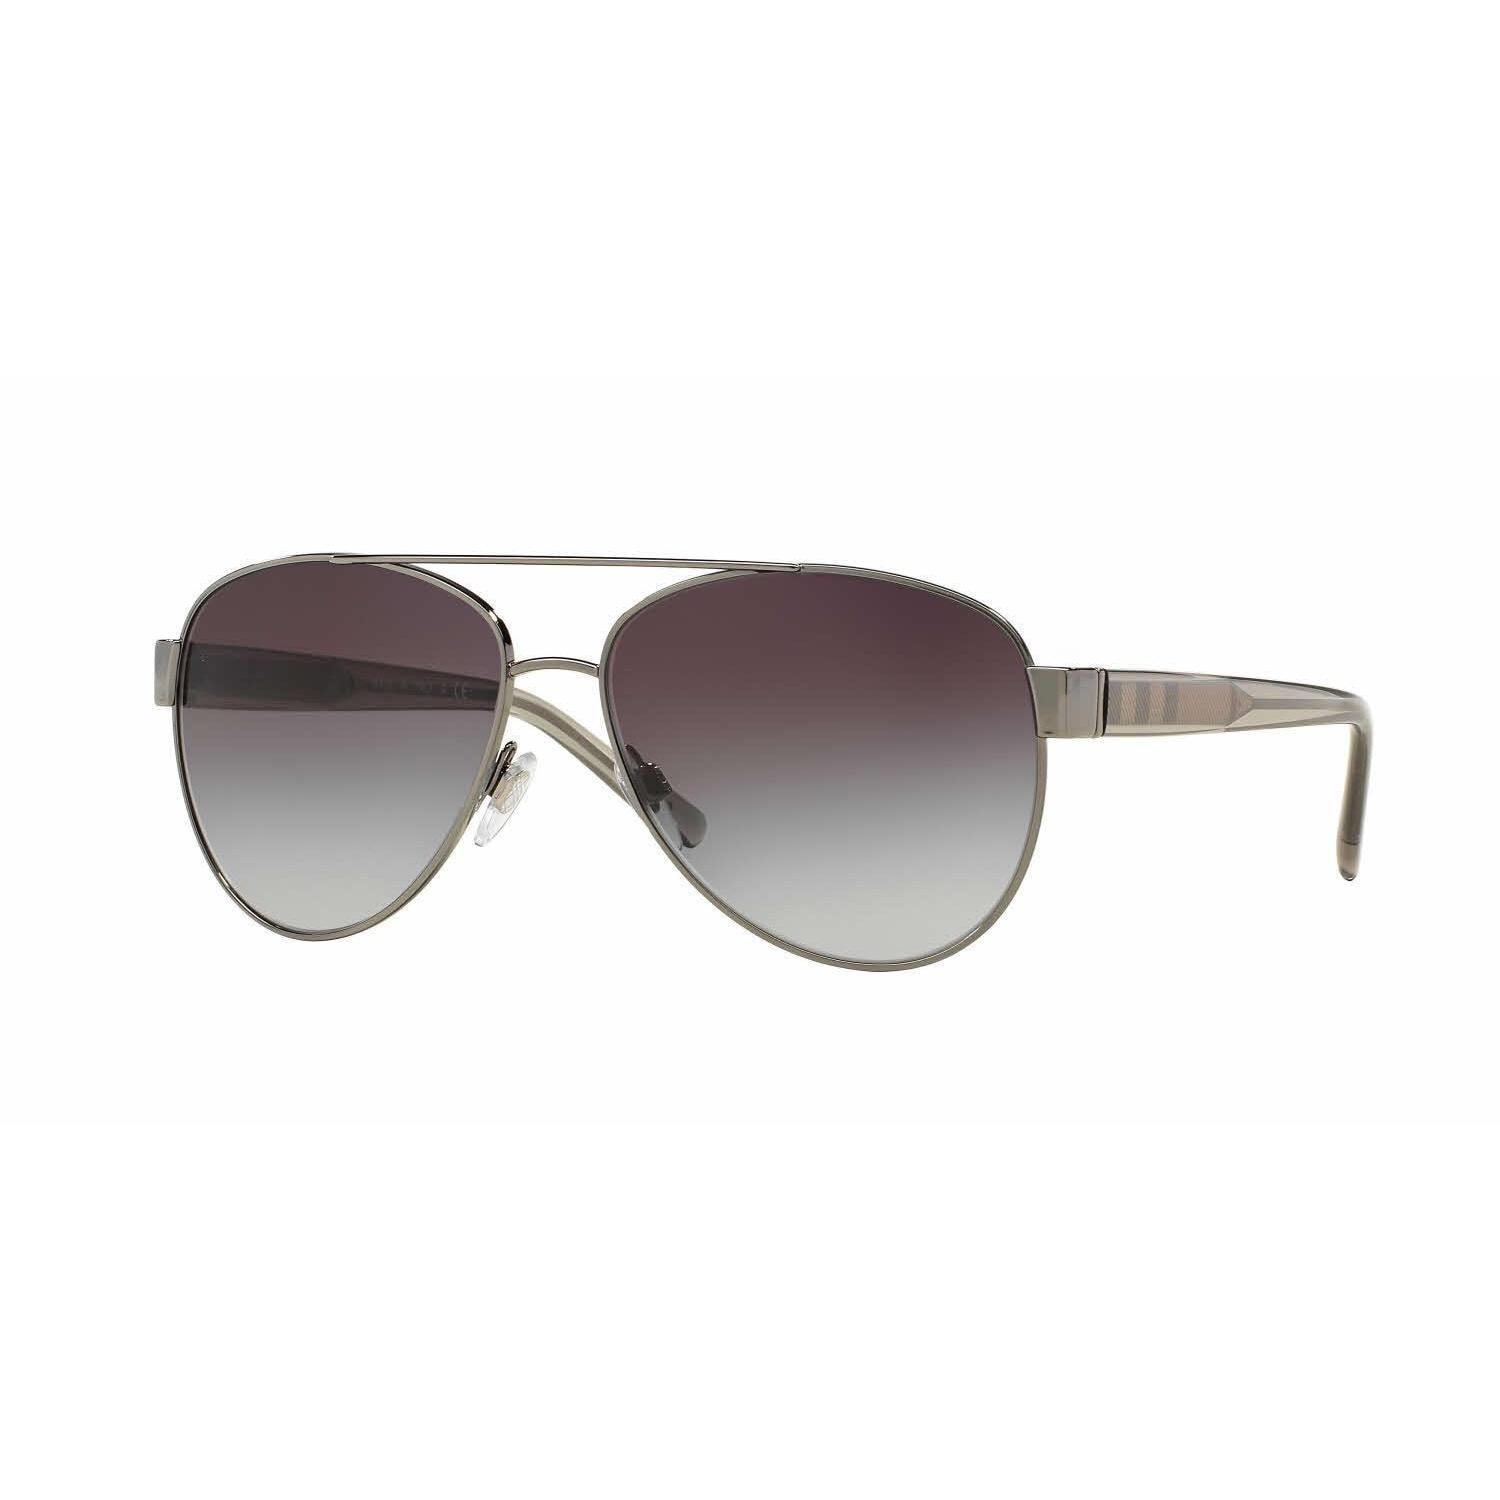 86b043954b16 Grey Women's Sunglasses | Find Great Sunglasses Deals Shopping at Overstock